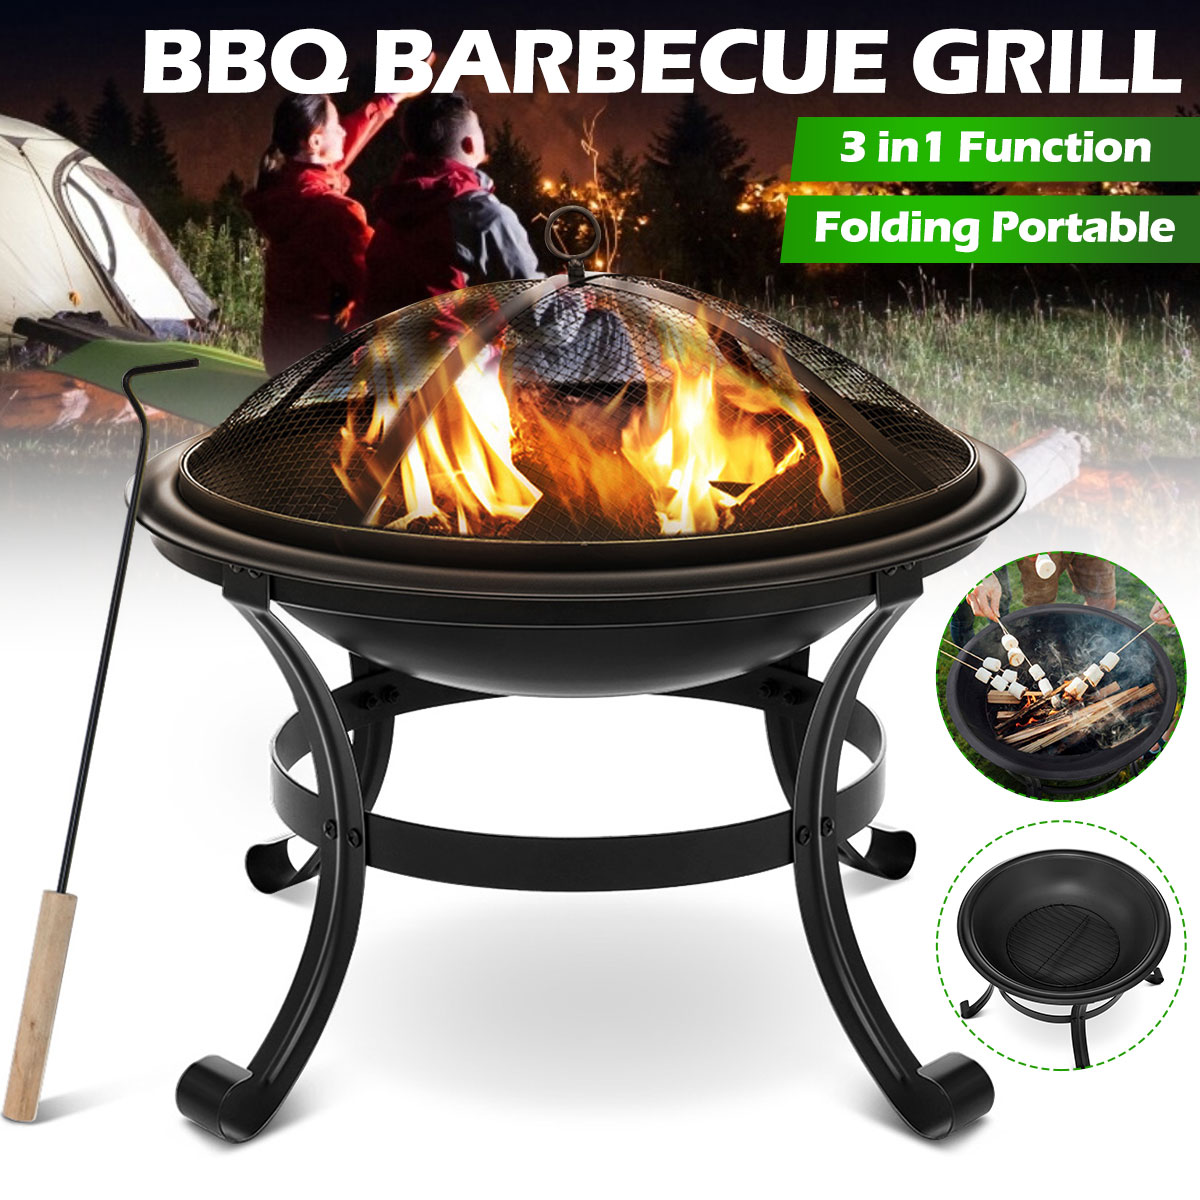 BBQ Grill Outdoor Fire Pit Stove Garden Patio Wood Log Barbecue Grill Net Set Cooking Tools Camping Brazier Stove Fire Pits